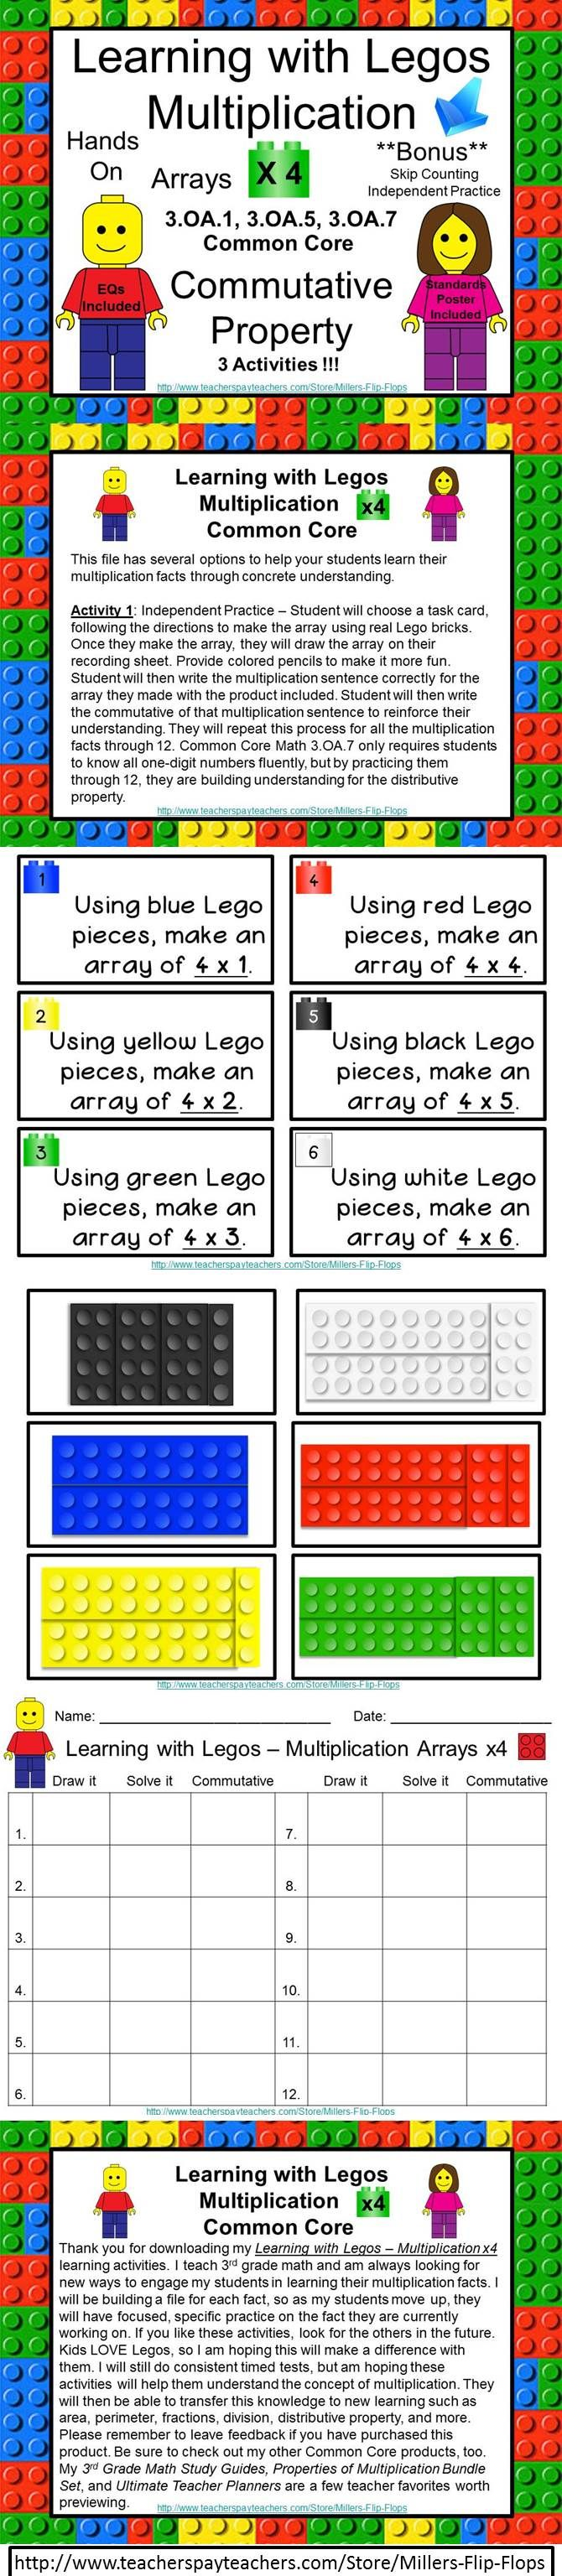 Learning with Legos - Multiplication x4 ***BONUS INCLUDED*** Skip Counting Independent Practice: Common Core - 3.OA.1, 3.OA.5, 3.OA.7. (Legos not included) GREAT for Small Group or RTI. Includes: EQ Poster, Standards Poster, Important Reminders, 12 Lego Multiplication Task Cards for x3, facts, 12 Lego Brick Cards for x3 facts, 3 Activity Direction Pages - Independent and Partner, Student Recording Sheet, Answer Key. GREAT for MATH STATIONS!!!